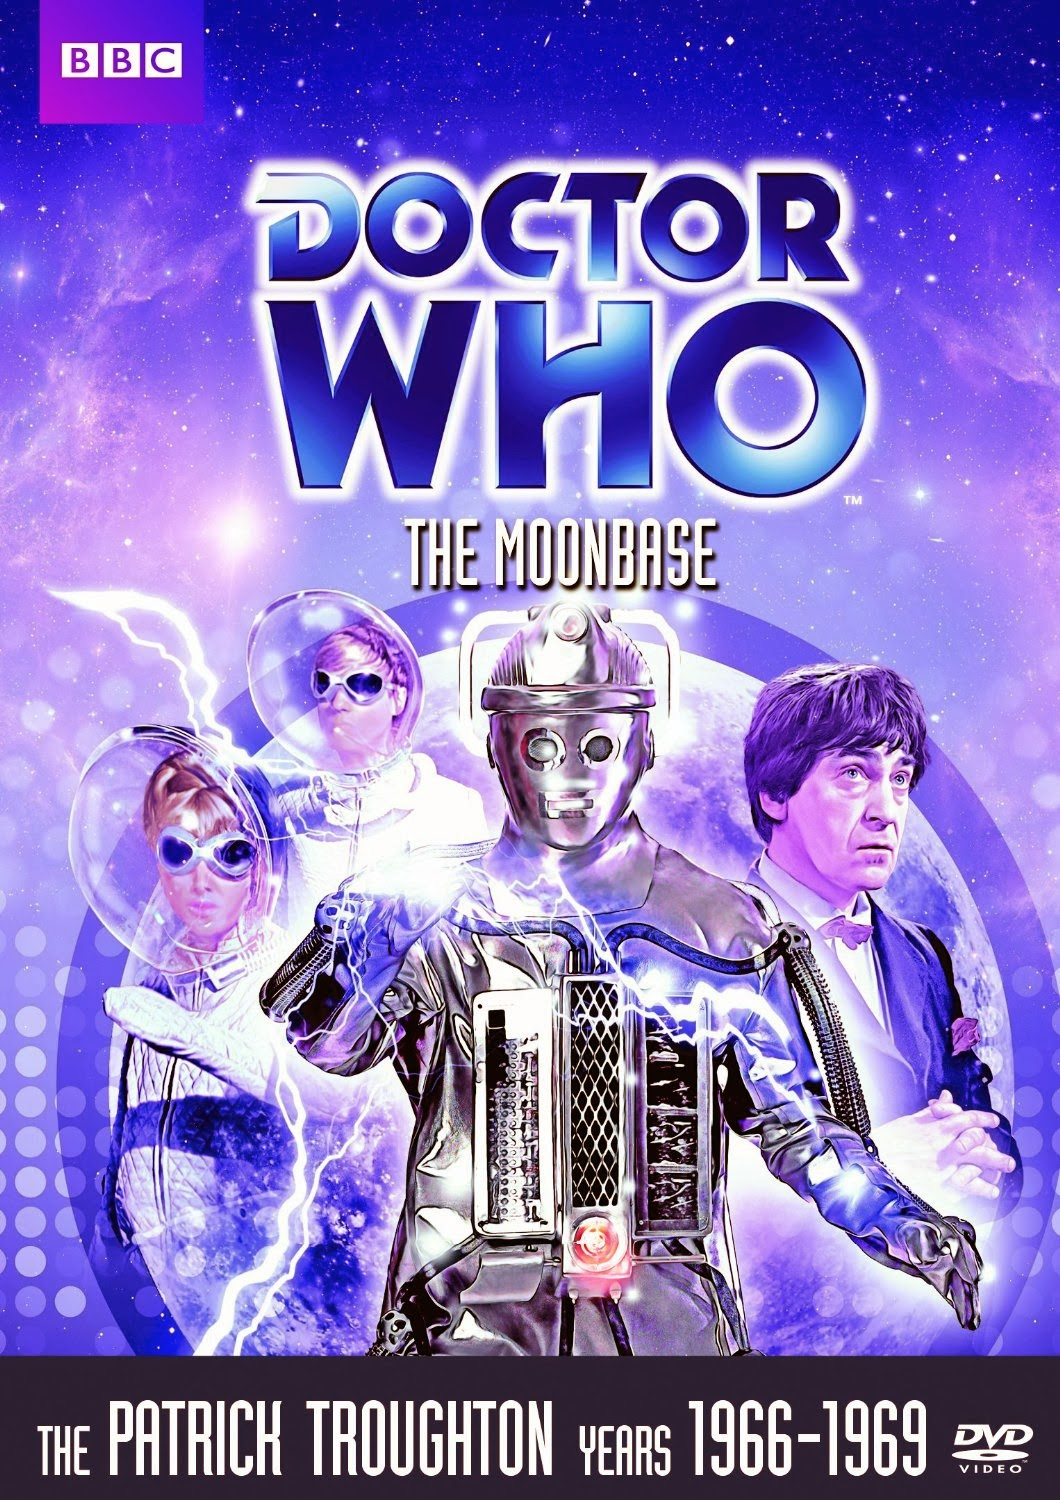 The Rued Morgue: Doctor Who: The Tenth Planet & The Moonbase DVD reviews